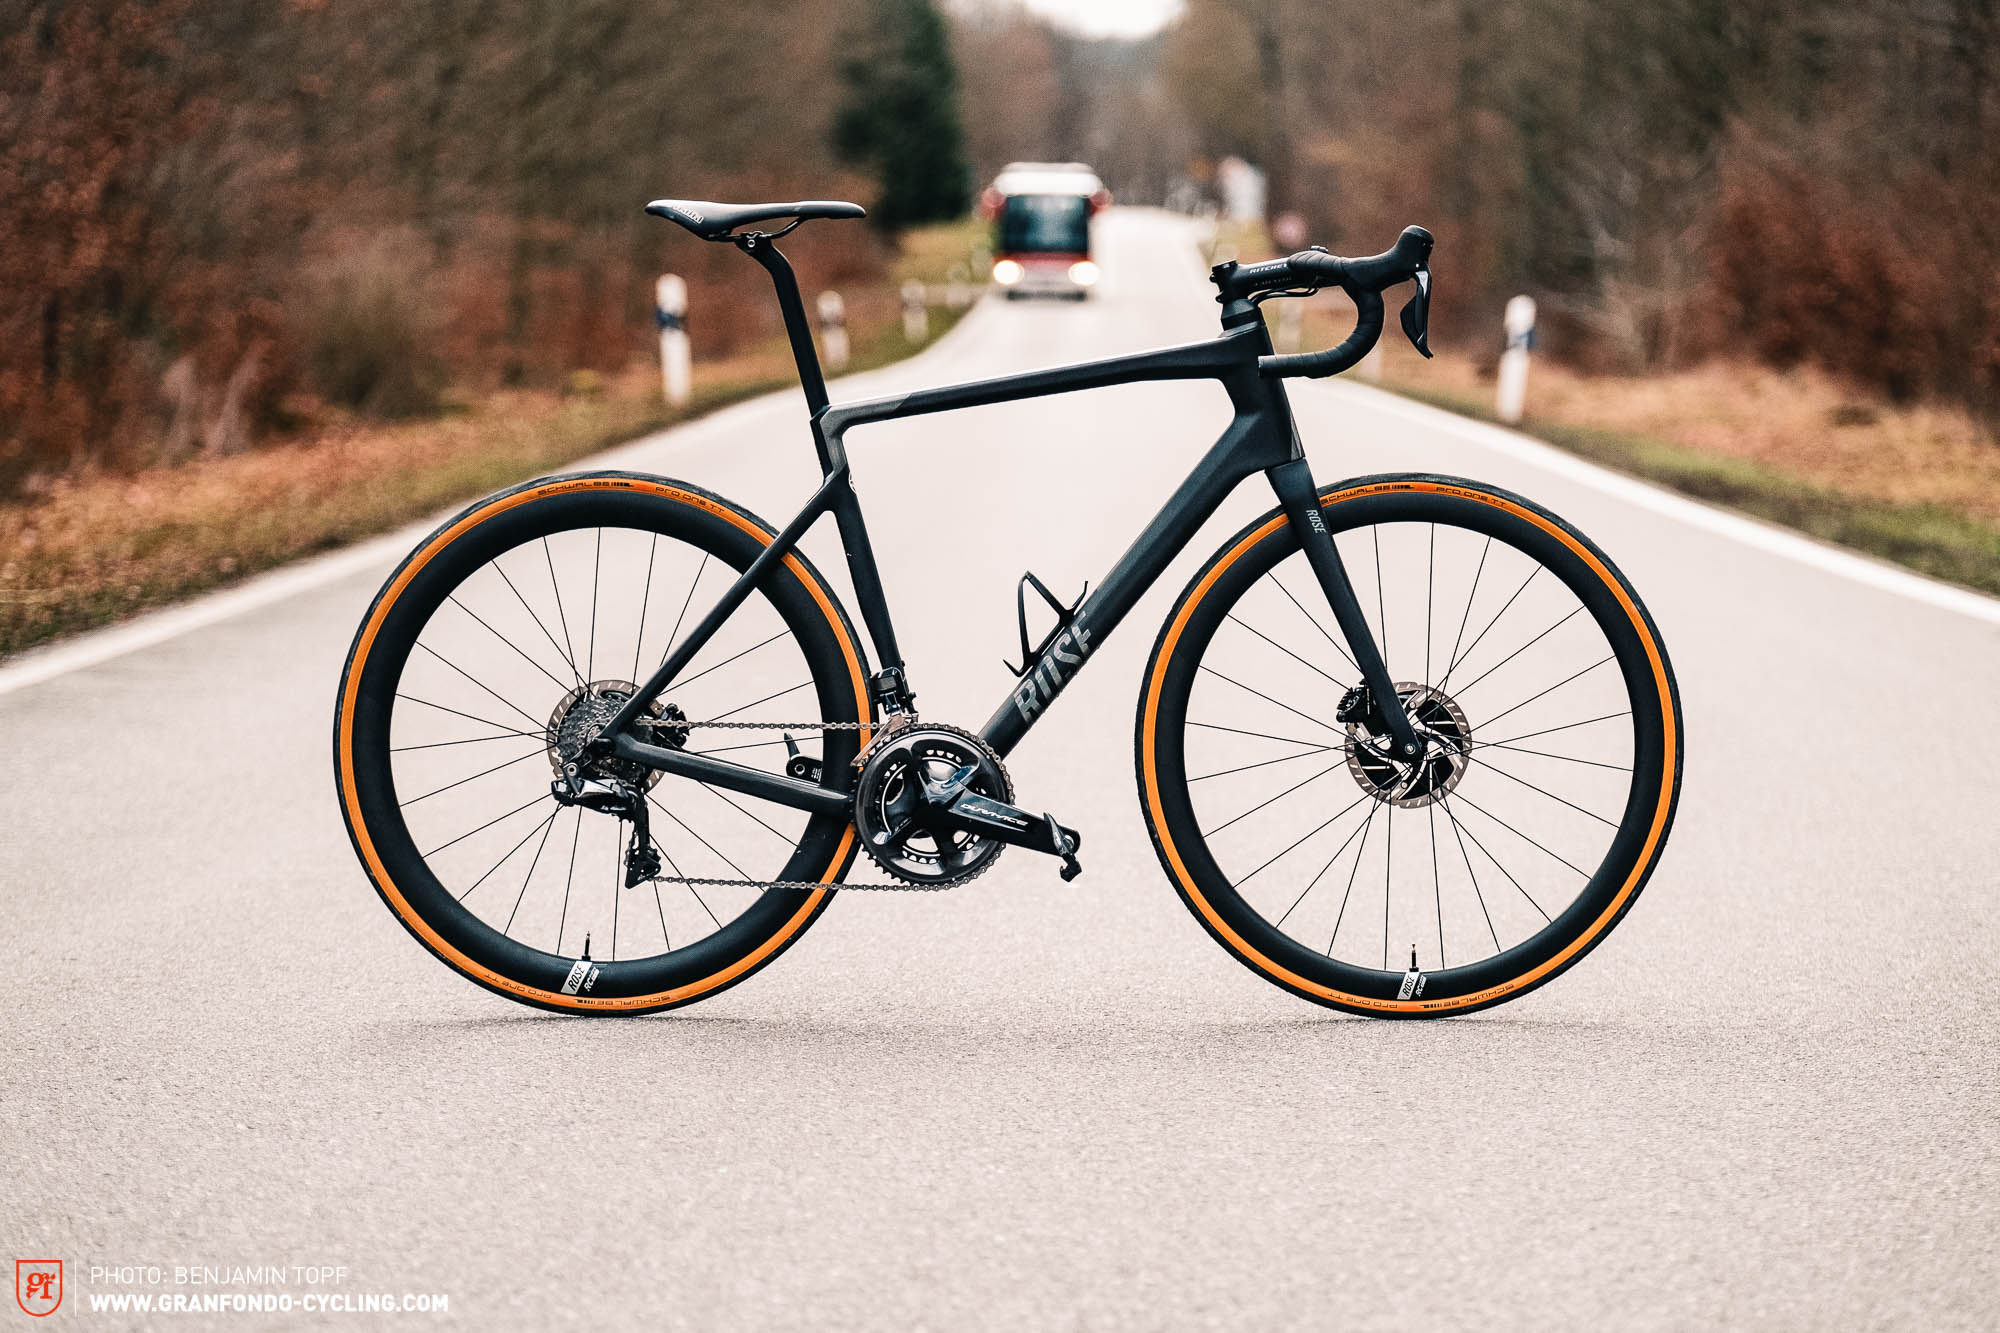 ROSE has reinvented its bike, introducing the long distance design for the first time with the new ROSE REVEAL – we took it out at Mallorca and the streets of Stuttgart for an exclusive first ride review.